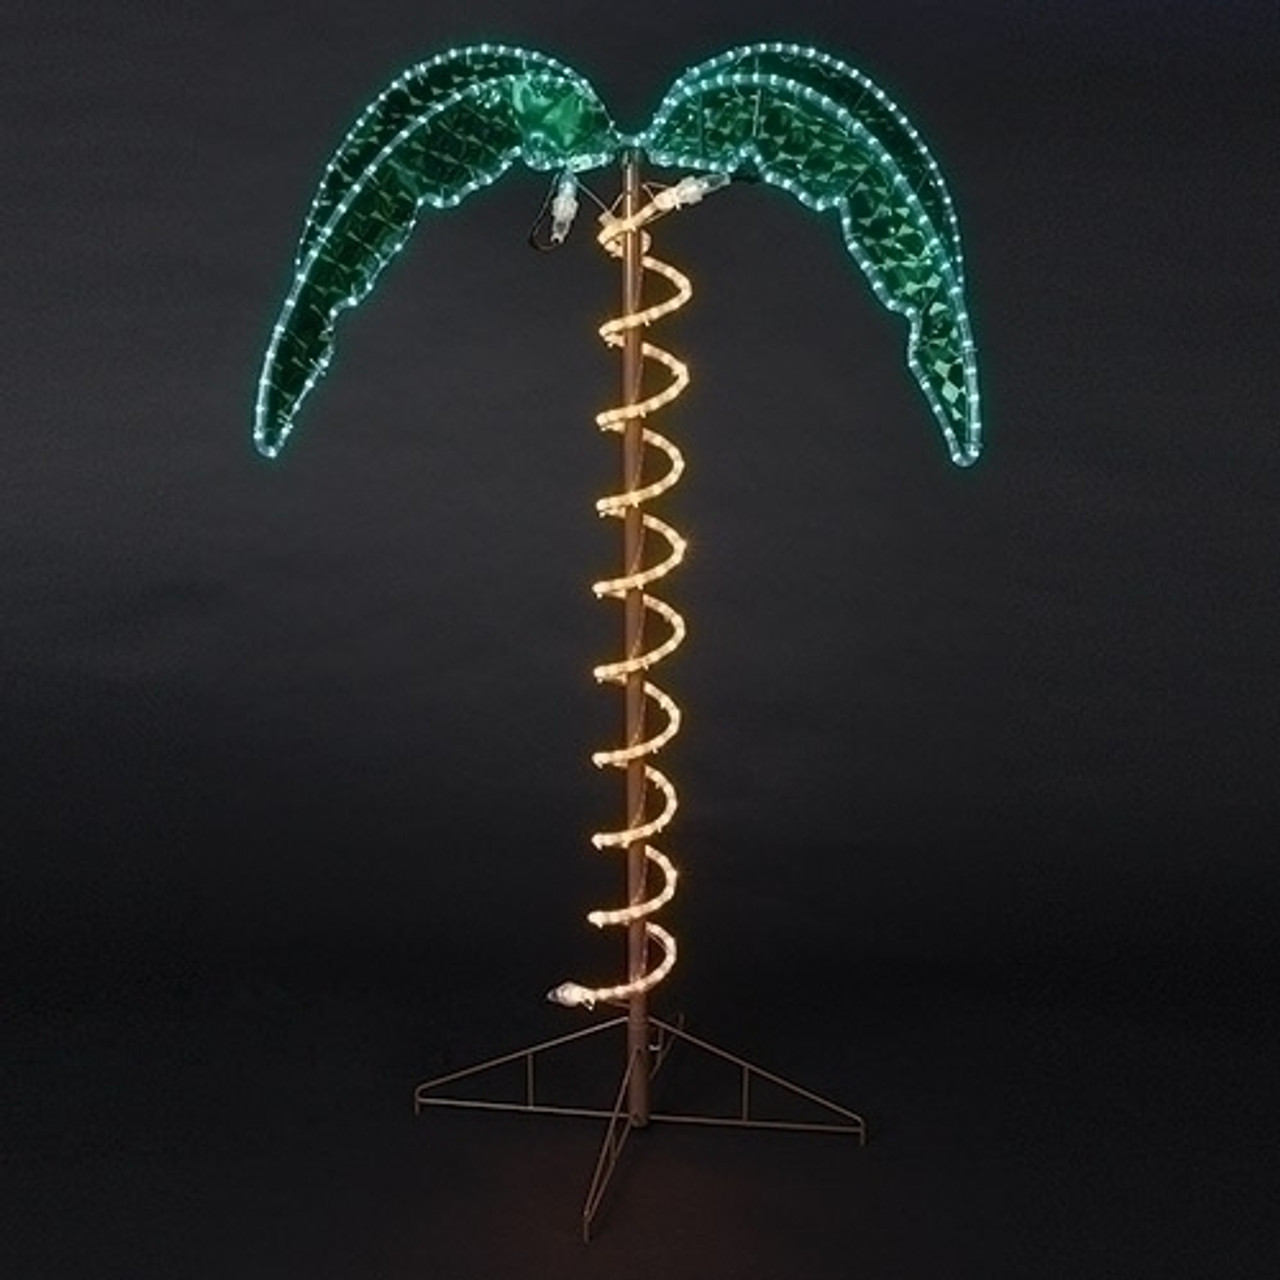 outdoor lighted palm tree 45 feet tall